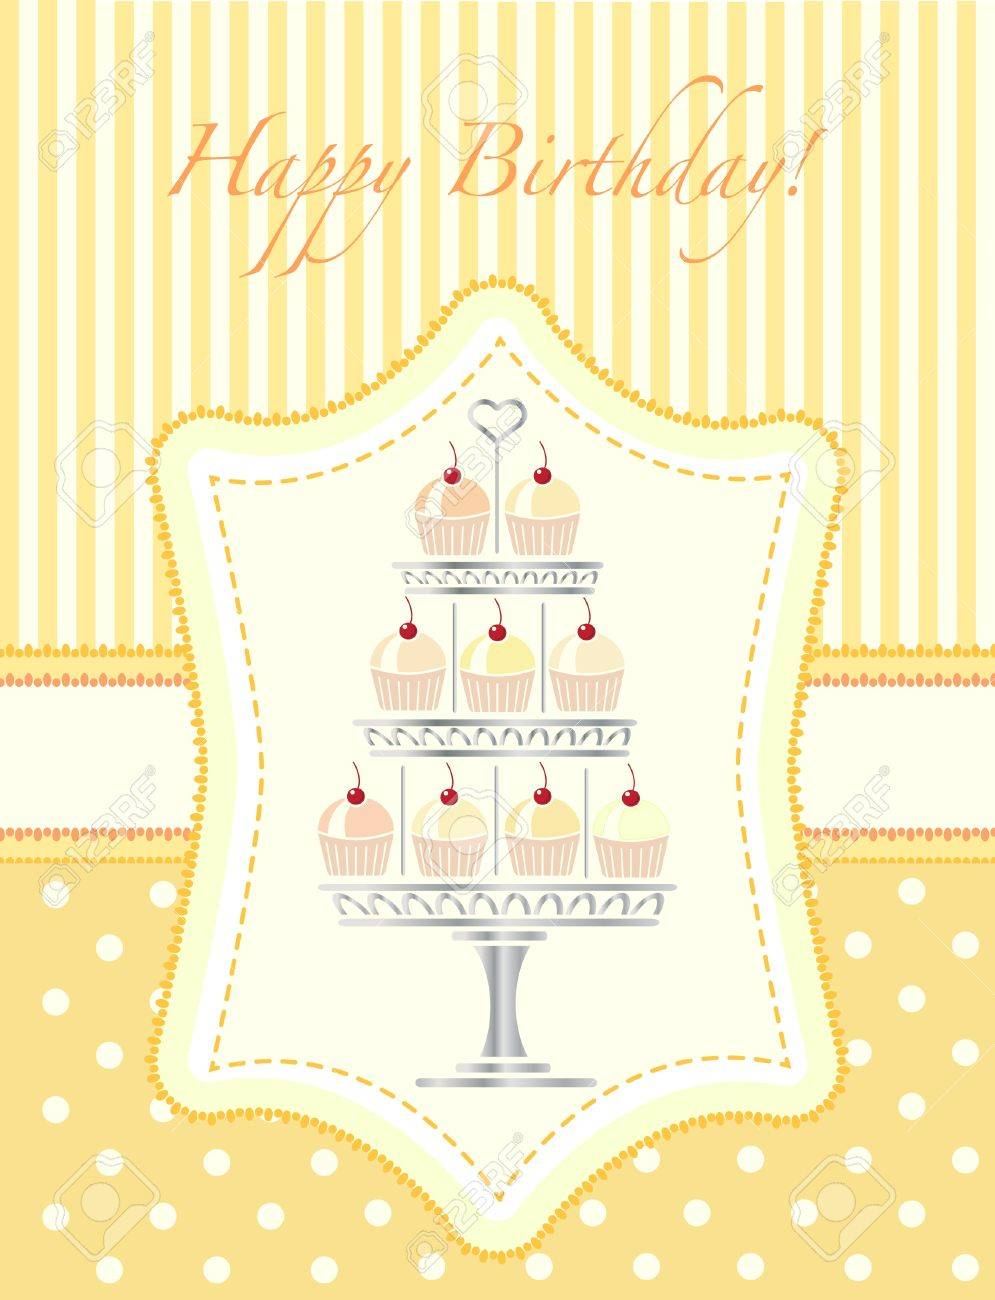 A Stencil Style Silver Cake Stand Full Of Cherry Cupcakes – Birthday Cake Card Template